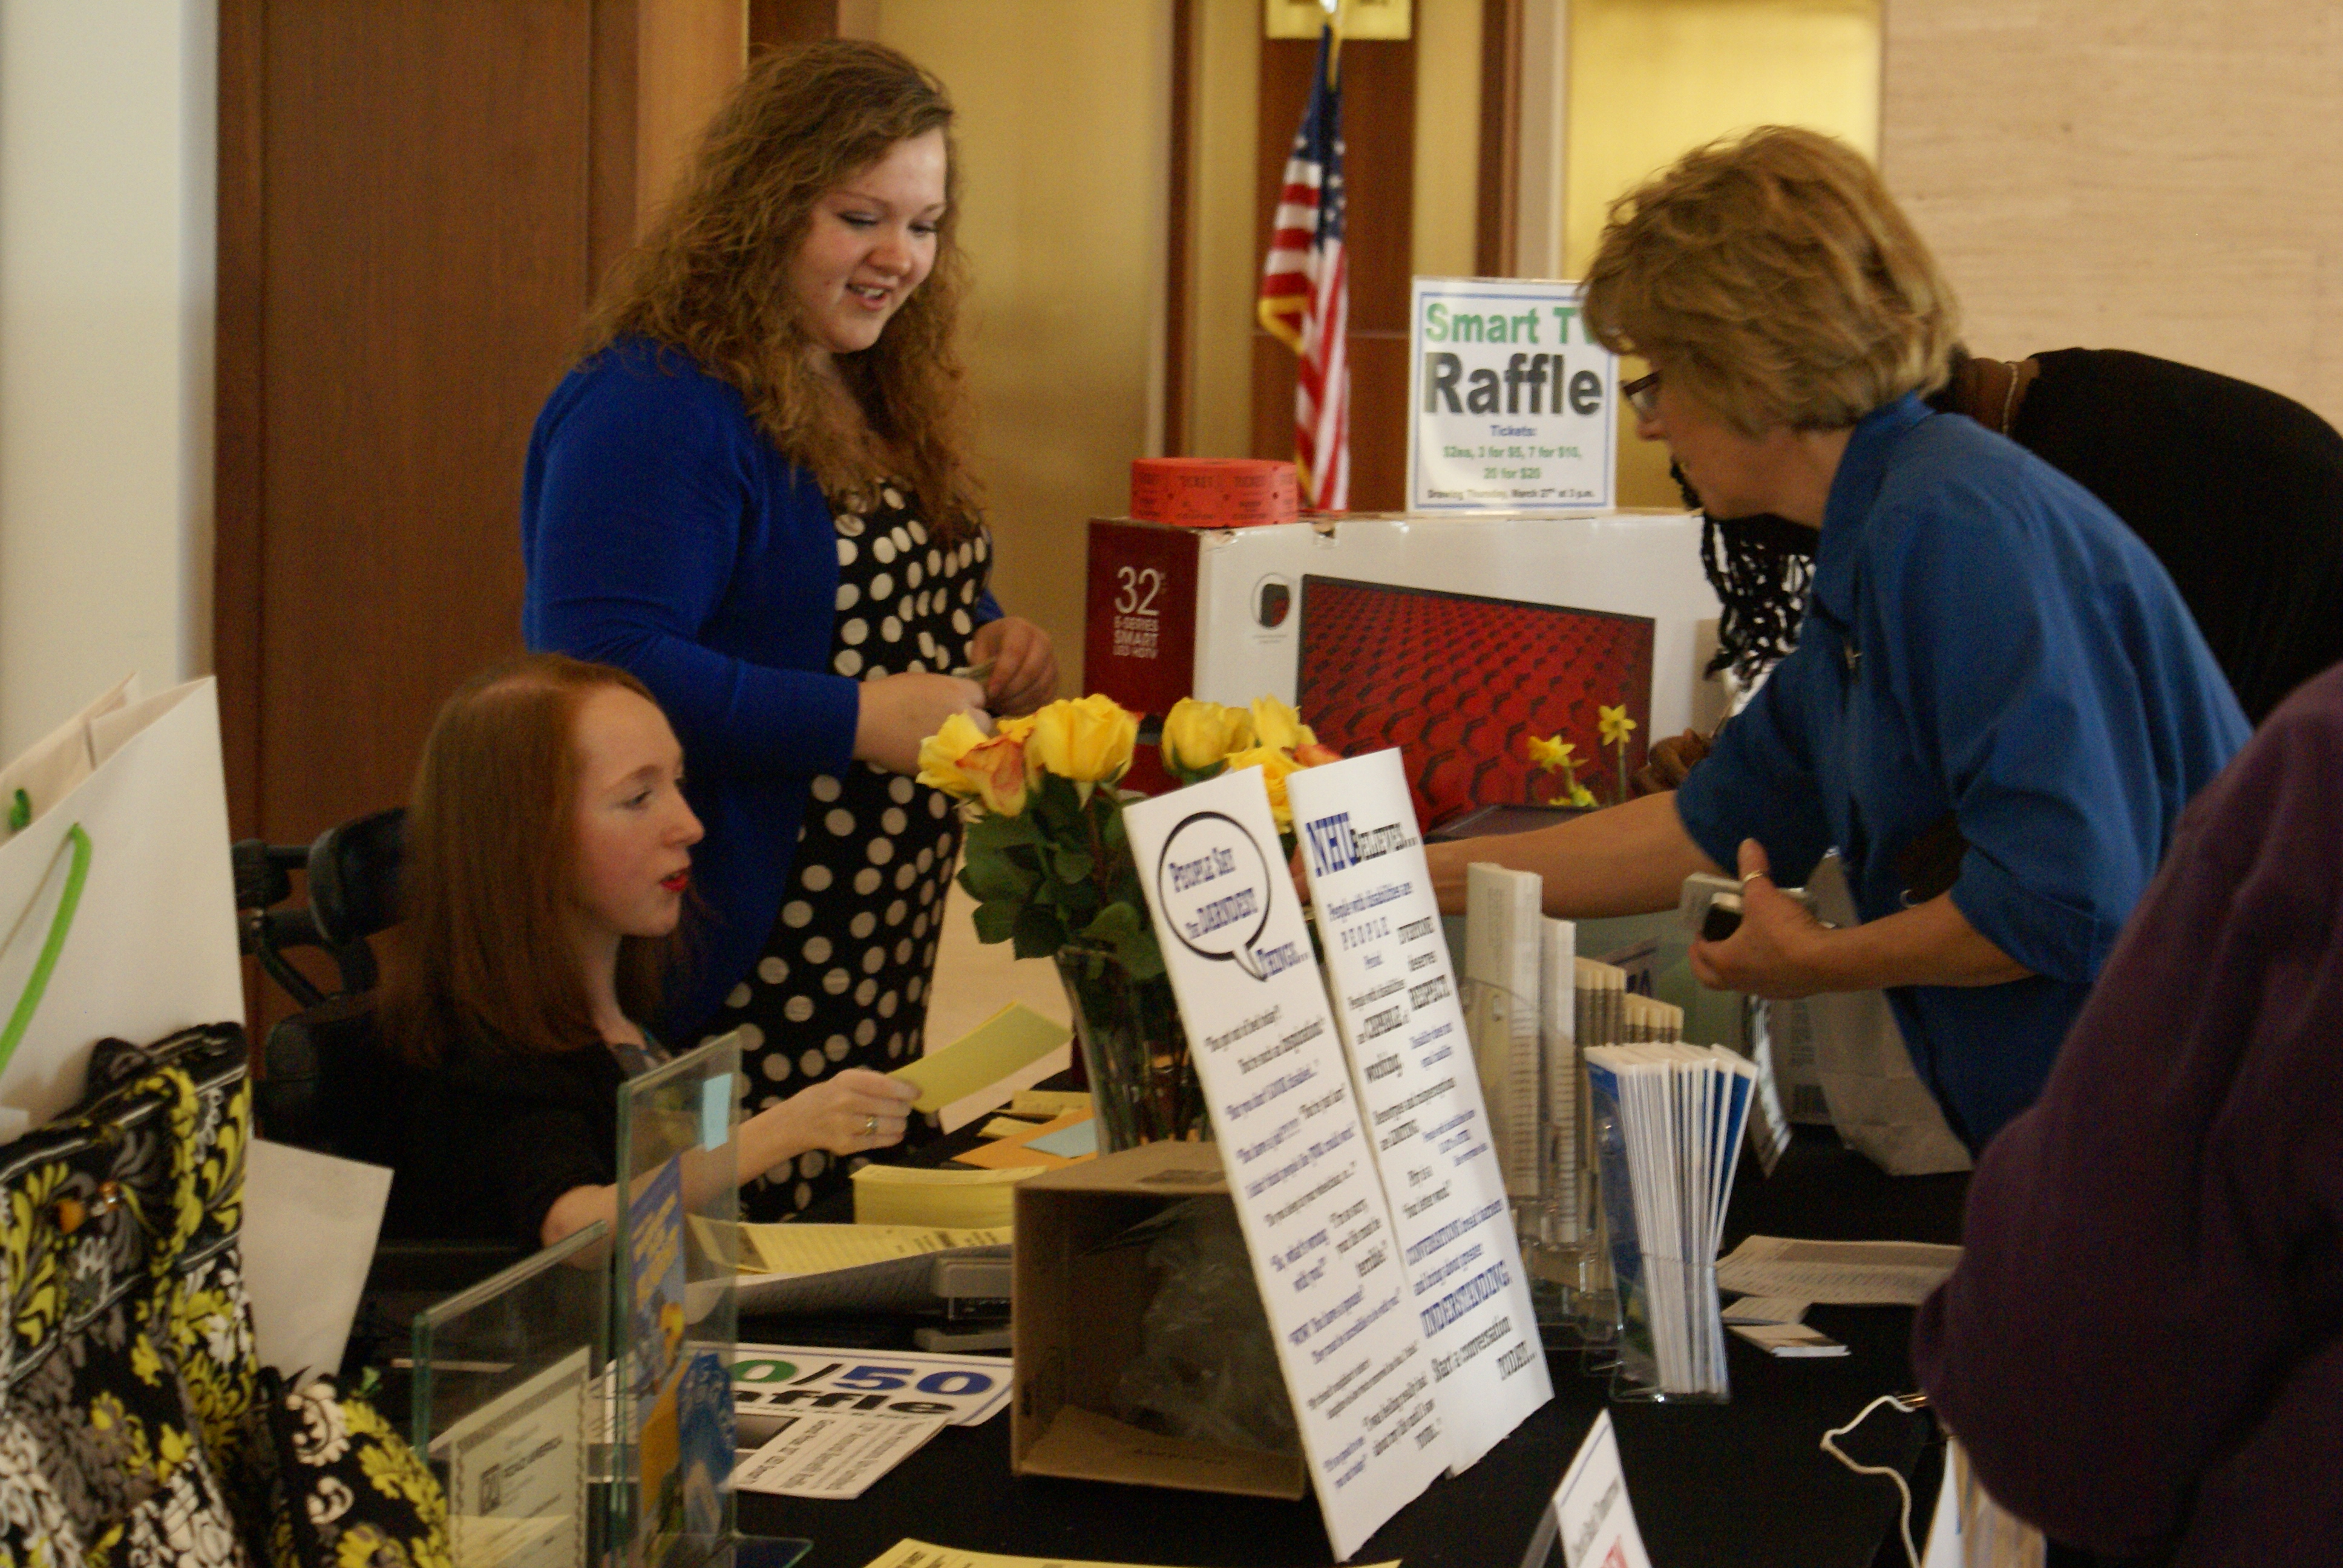 Raffle participants purchasing tickets from our NHU volunteers at our event